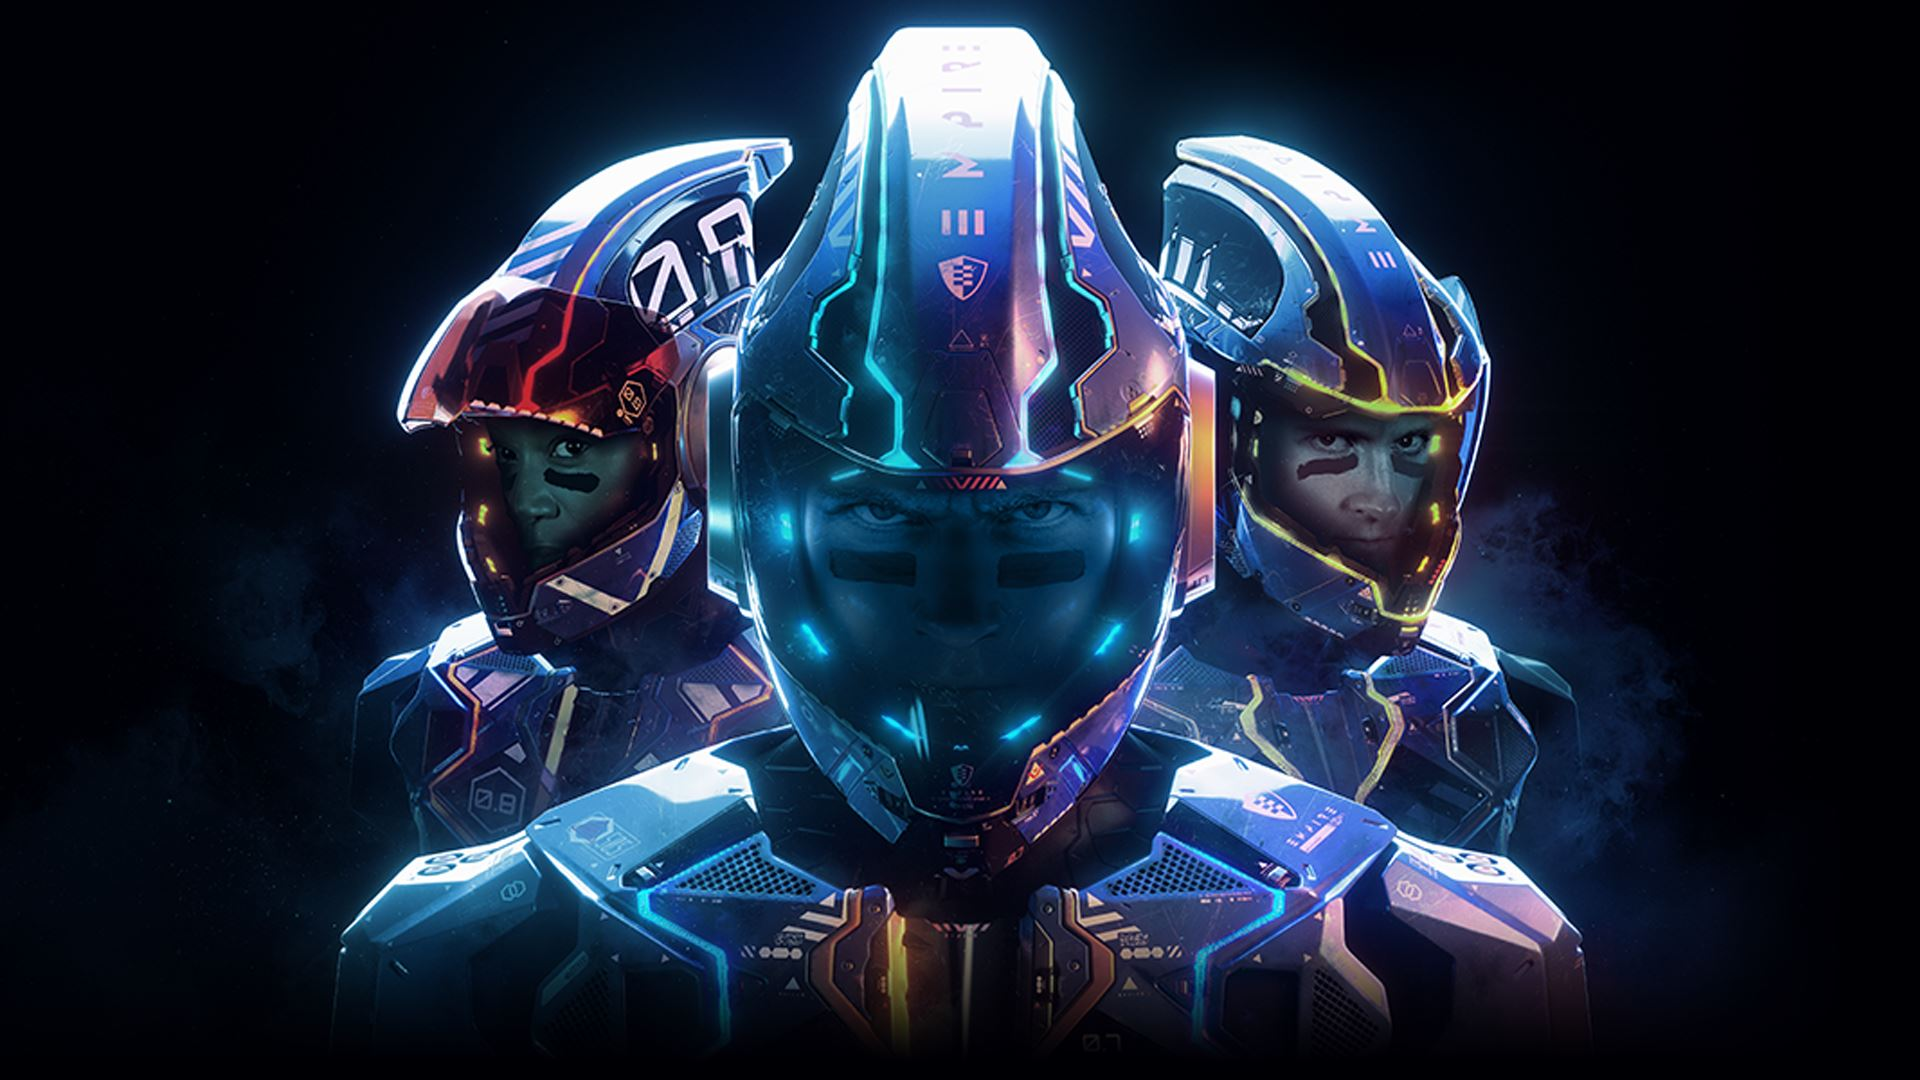 Laser League, juego de acción multi player futurísta viene a Xbox One con Game Pass